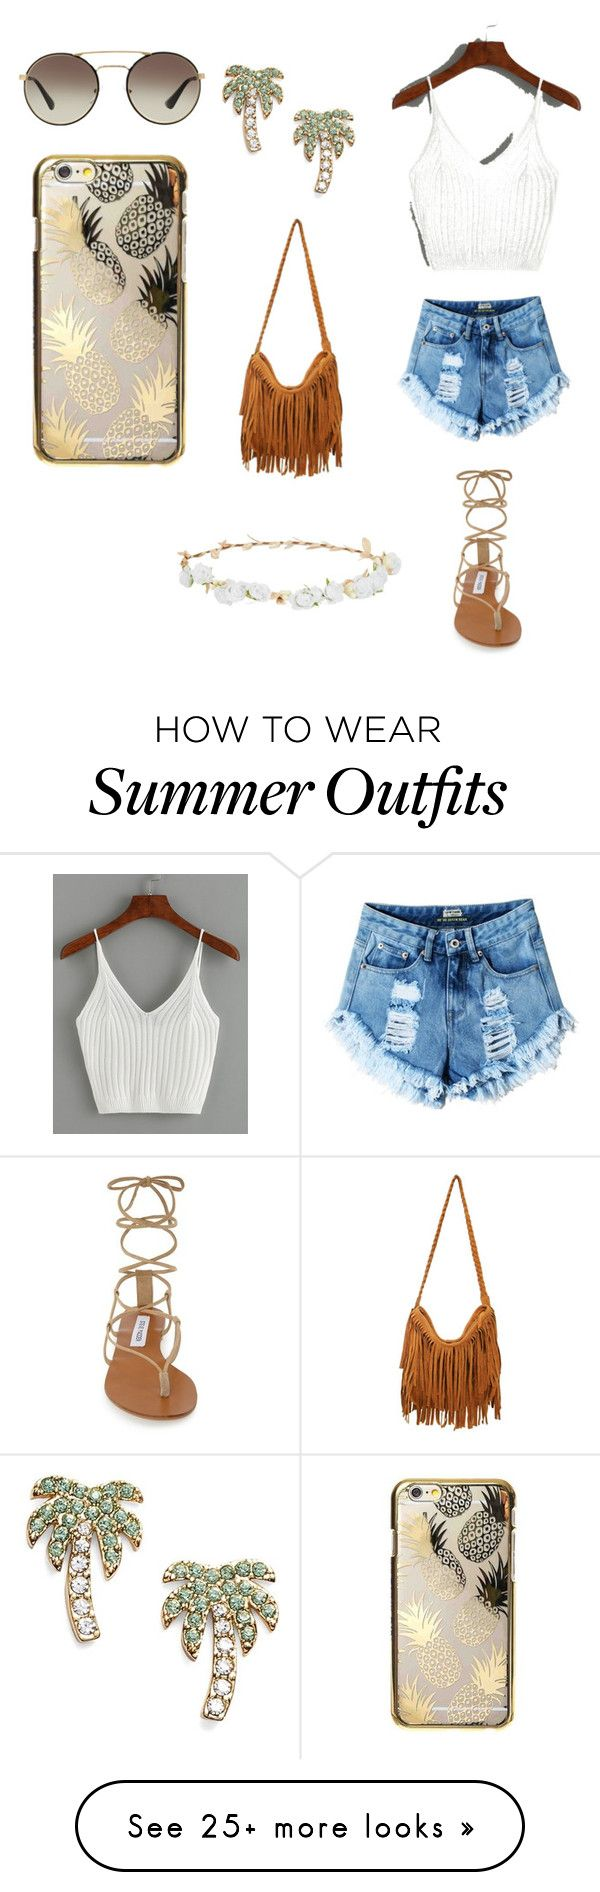 """""""Hi! This is my first outfit and I love it! It's perfect for the summer. Hope you like it! ☺️"""" by bambi-an on Polyvore featuring Steve Madden, Kate Spade, Robert Rose, Skinnydip and Prada"""